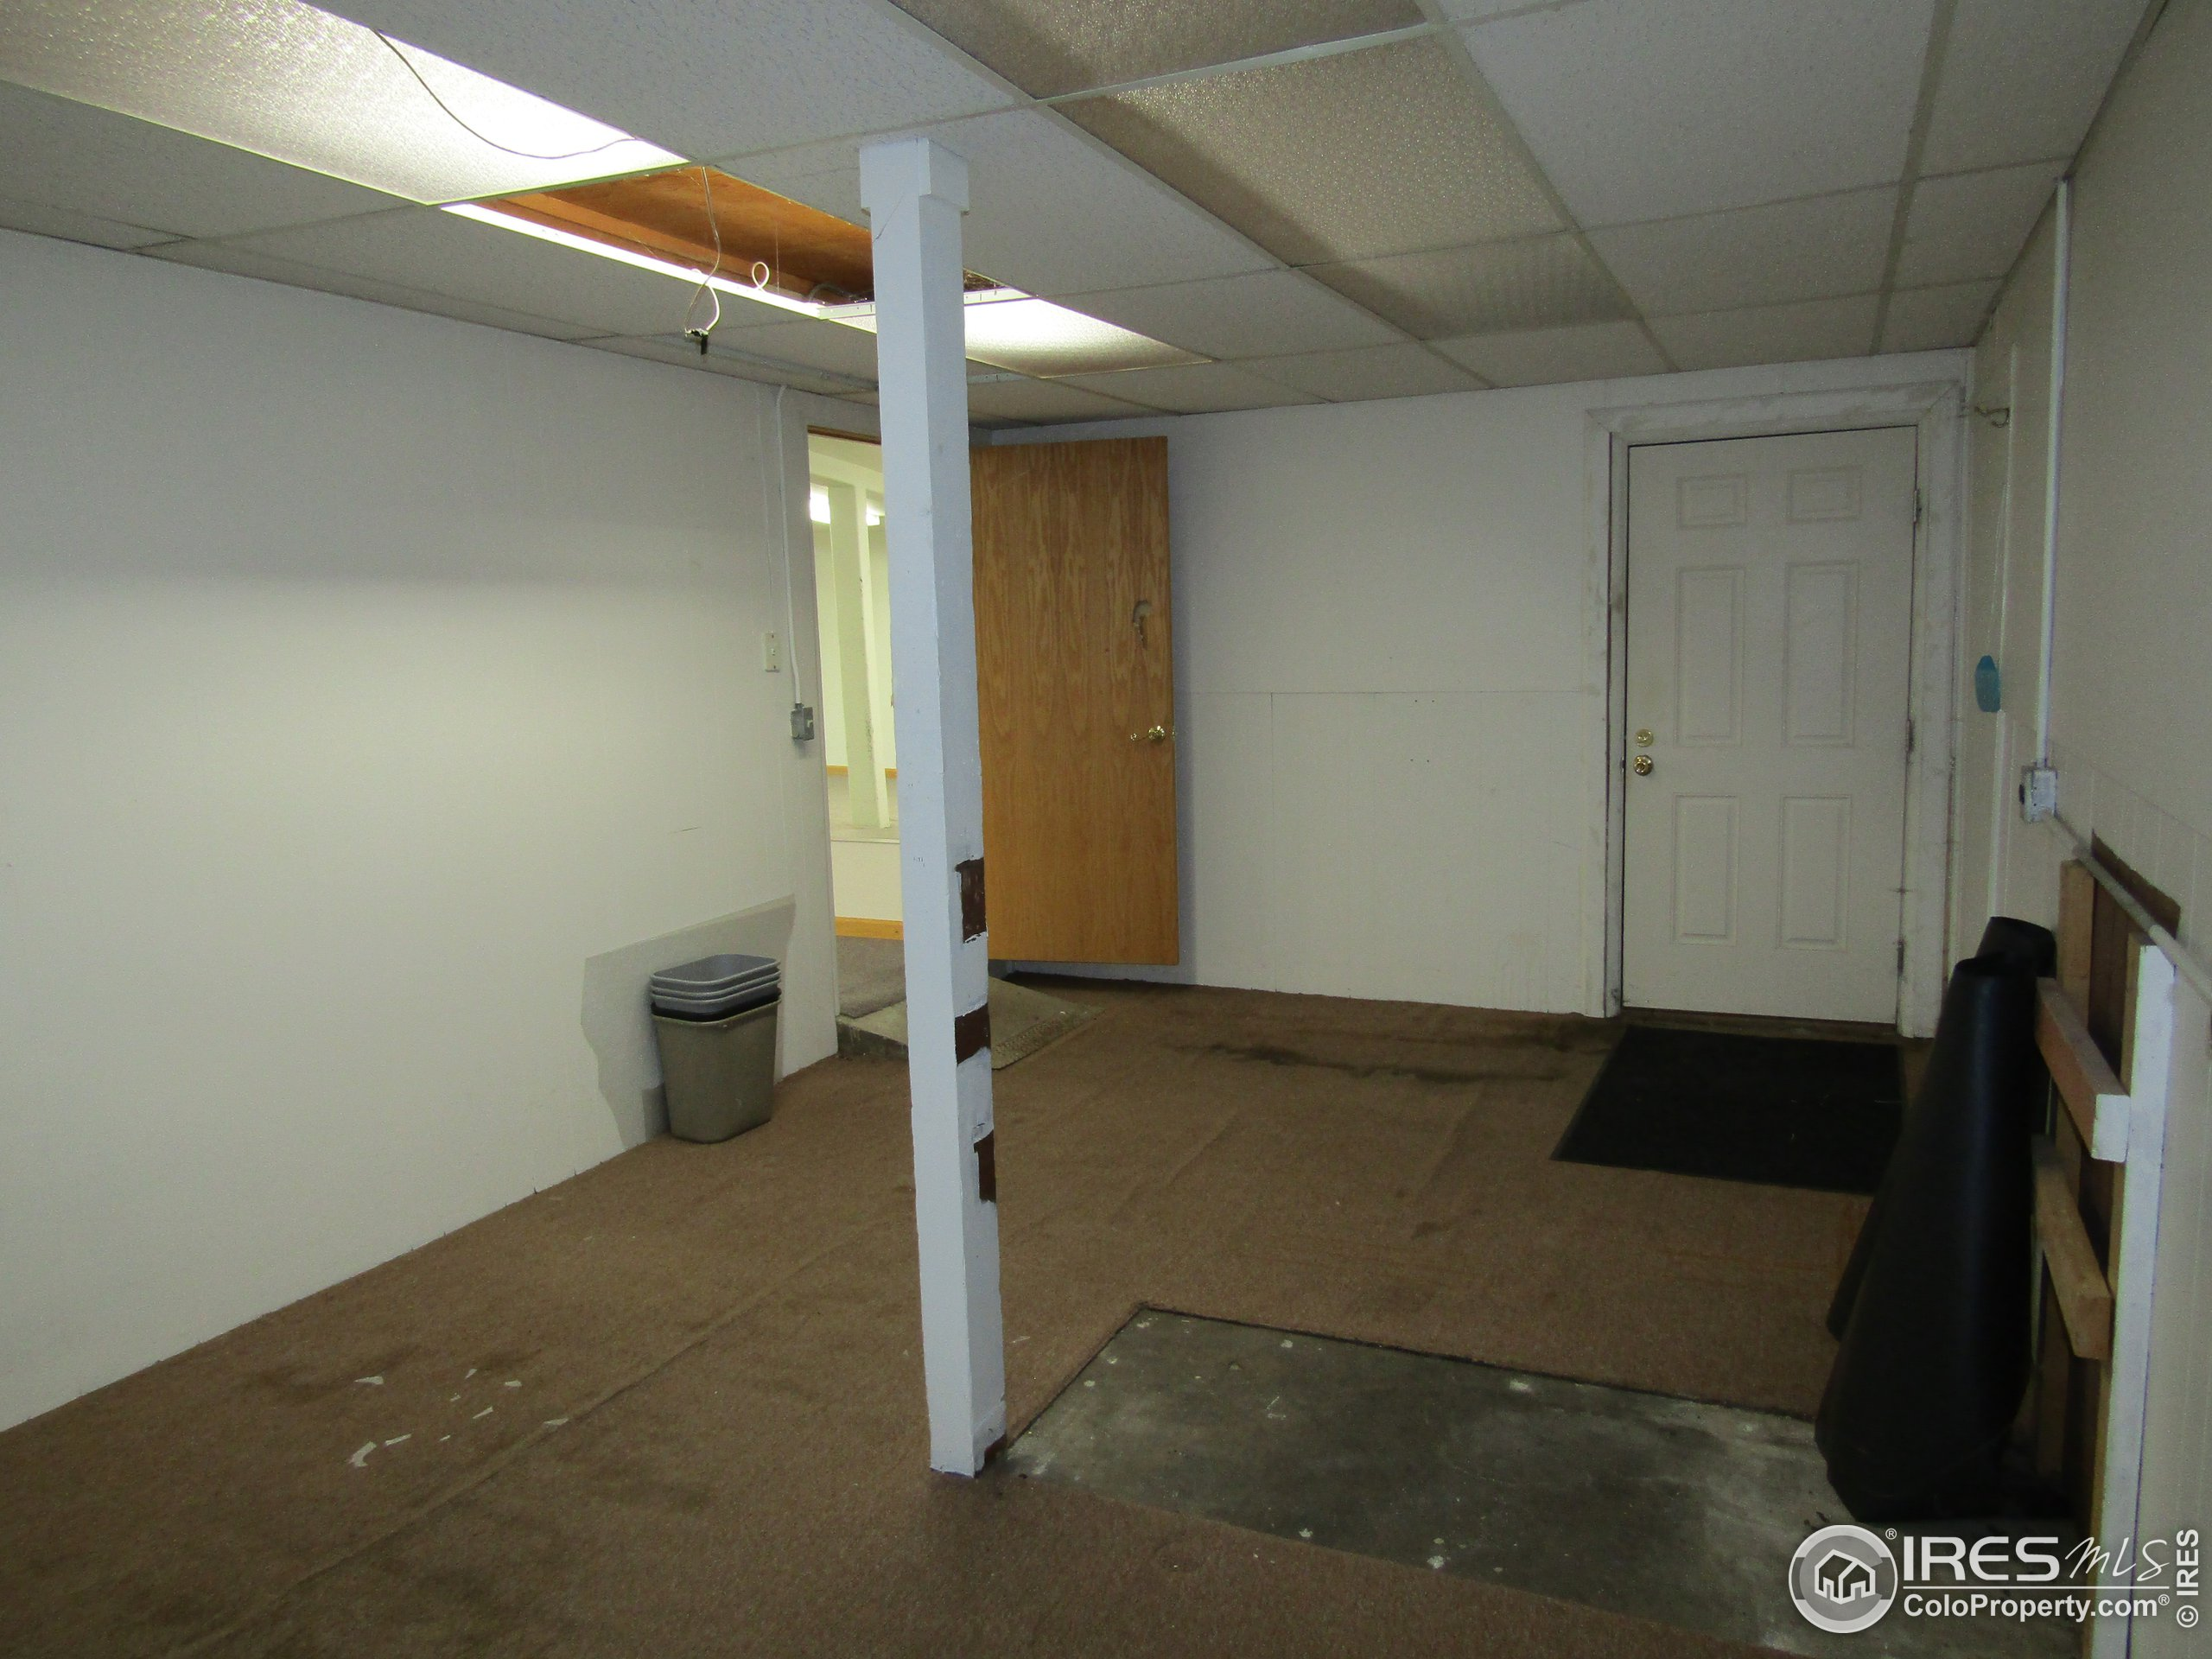 Other end of office 3. Exterior door to right is NW corner of building. Door at left goes into large open room